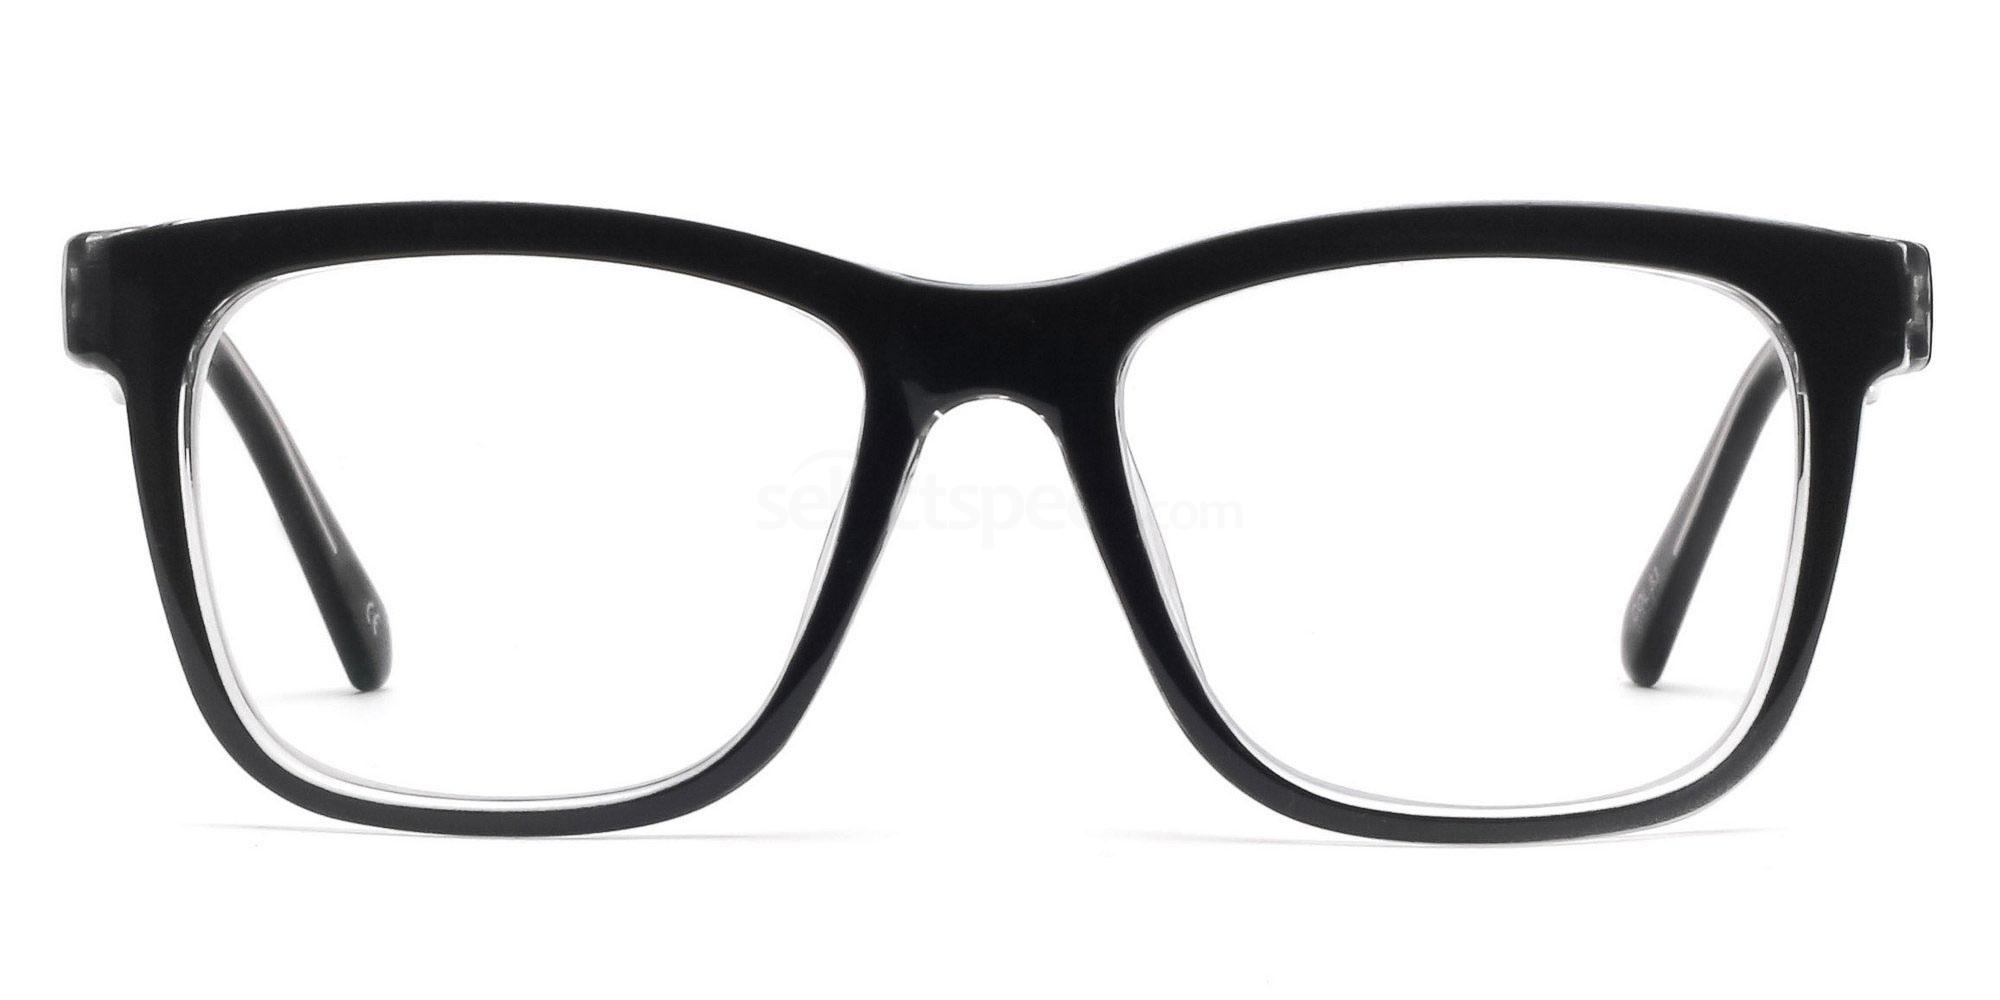 C33 2444 - Black and Clear Glasses, Savannah